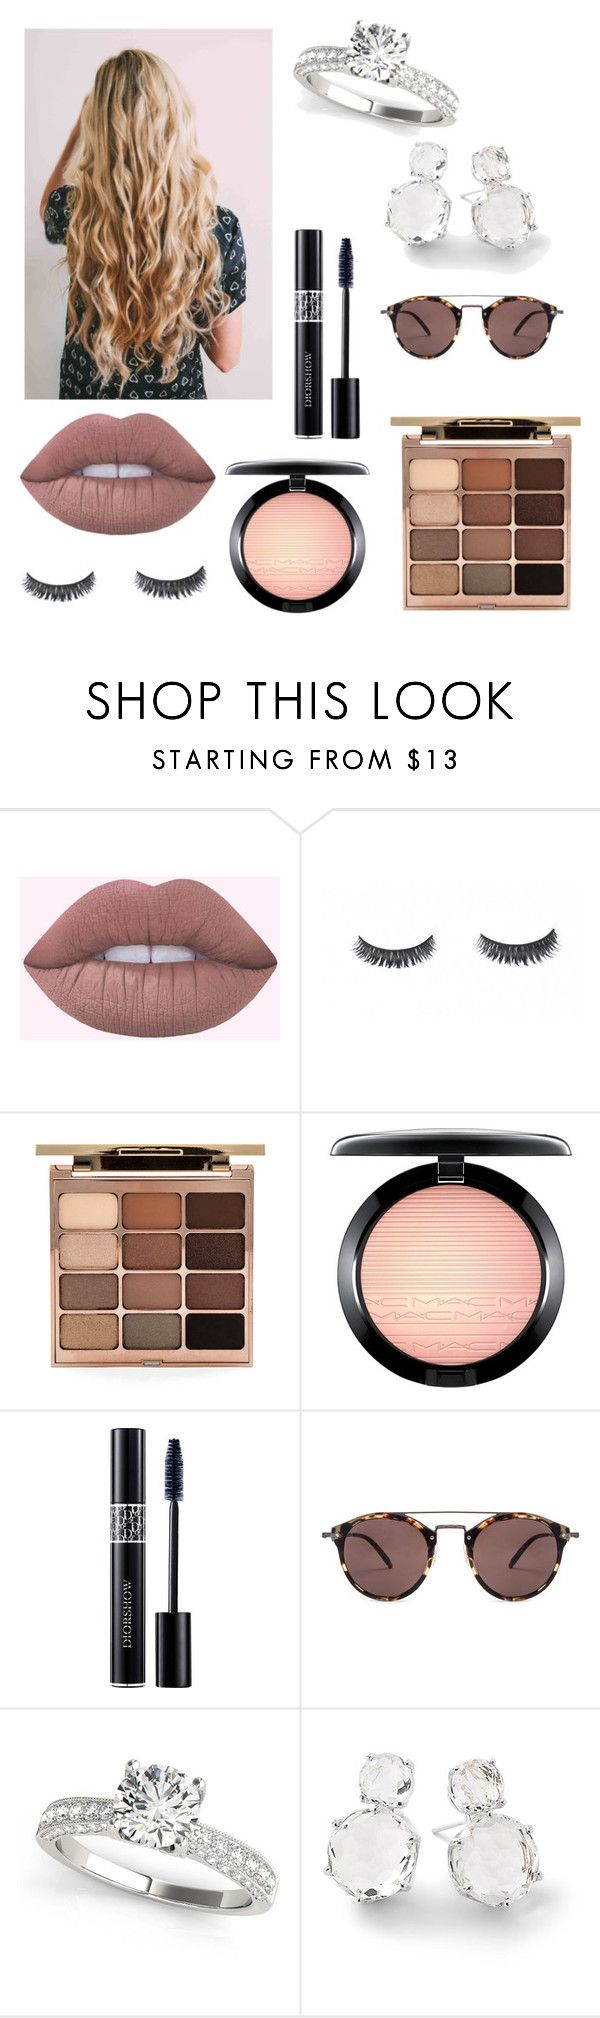 """""""Untitled #33"""" by kylie-cardinali on Polyvore featuring beauty, Stila, MAC Cosmetics, Christian Dior, Oliver Peoples and Ippolita"""